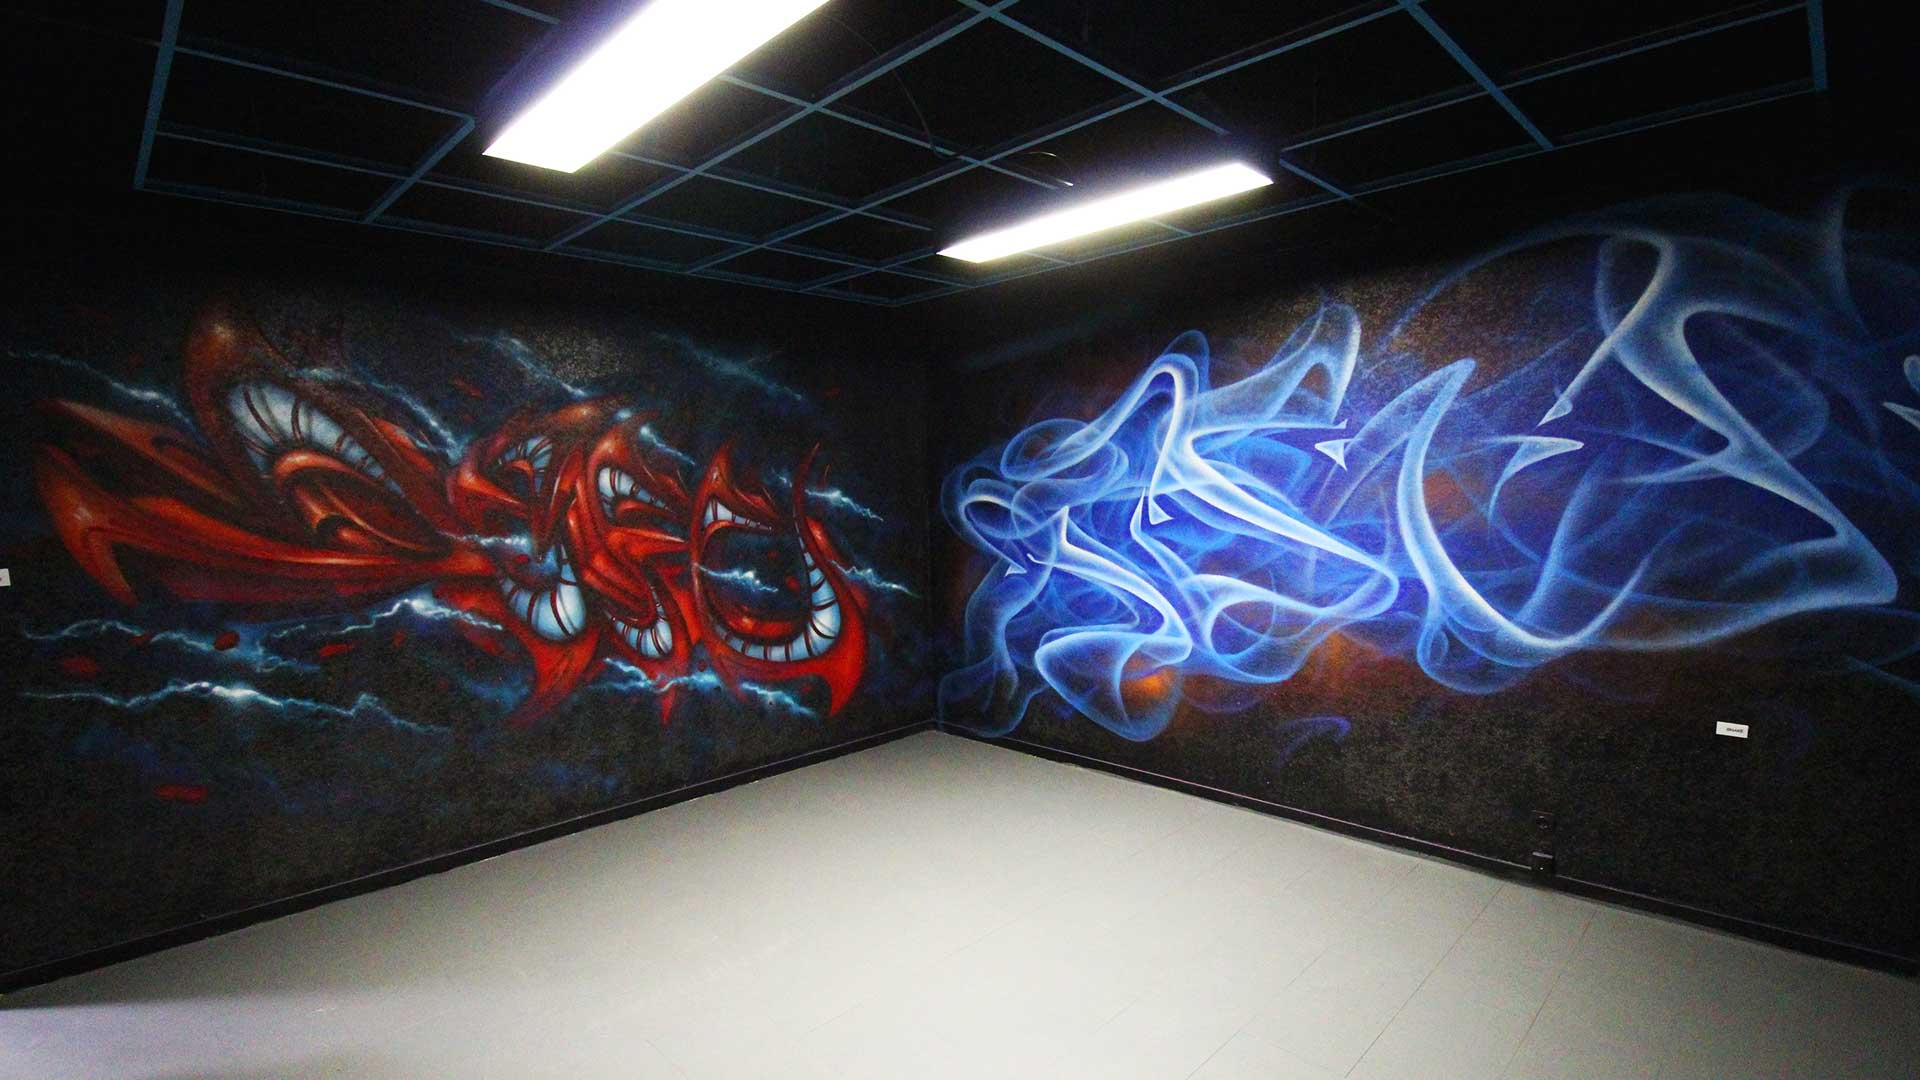 deft-snake2-graffiti-3d-exposition-graff-in